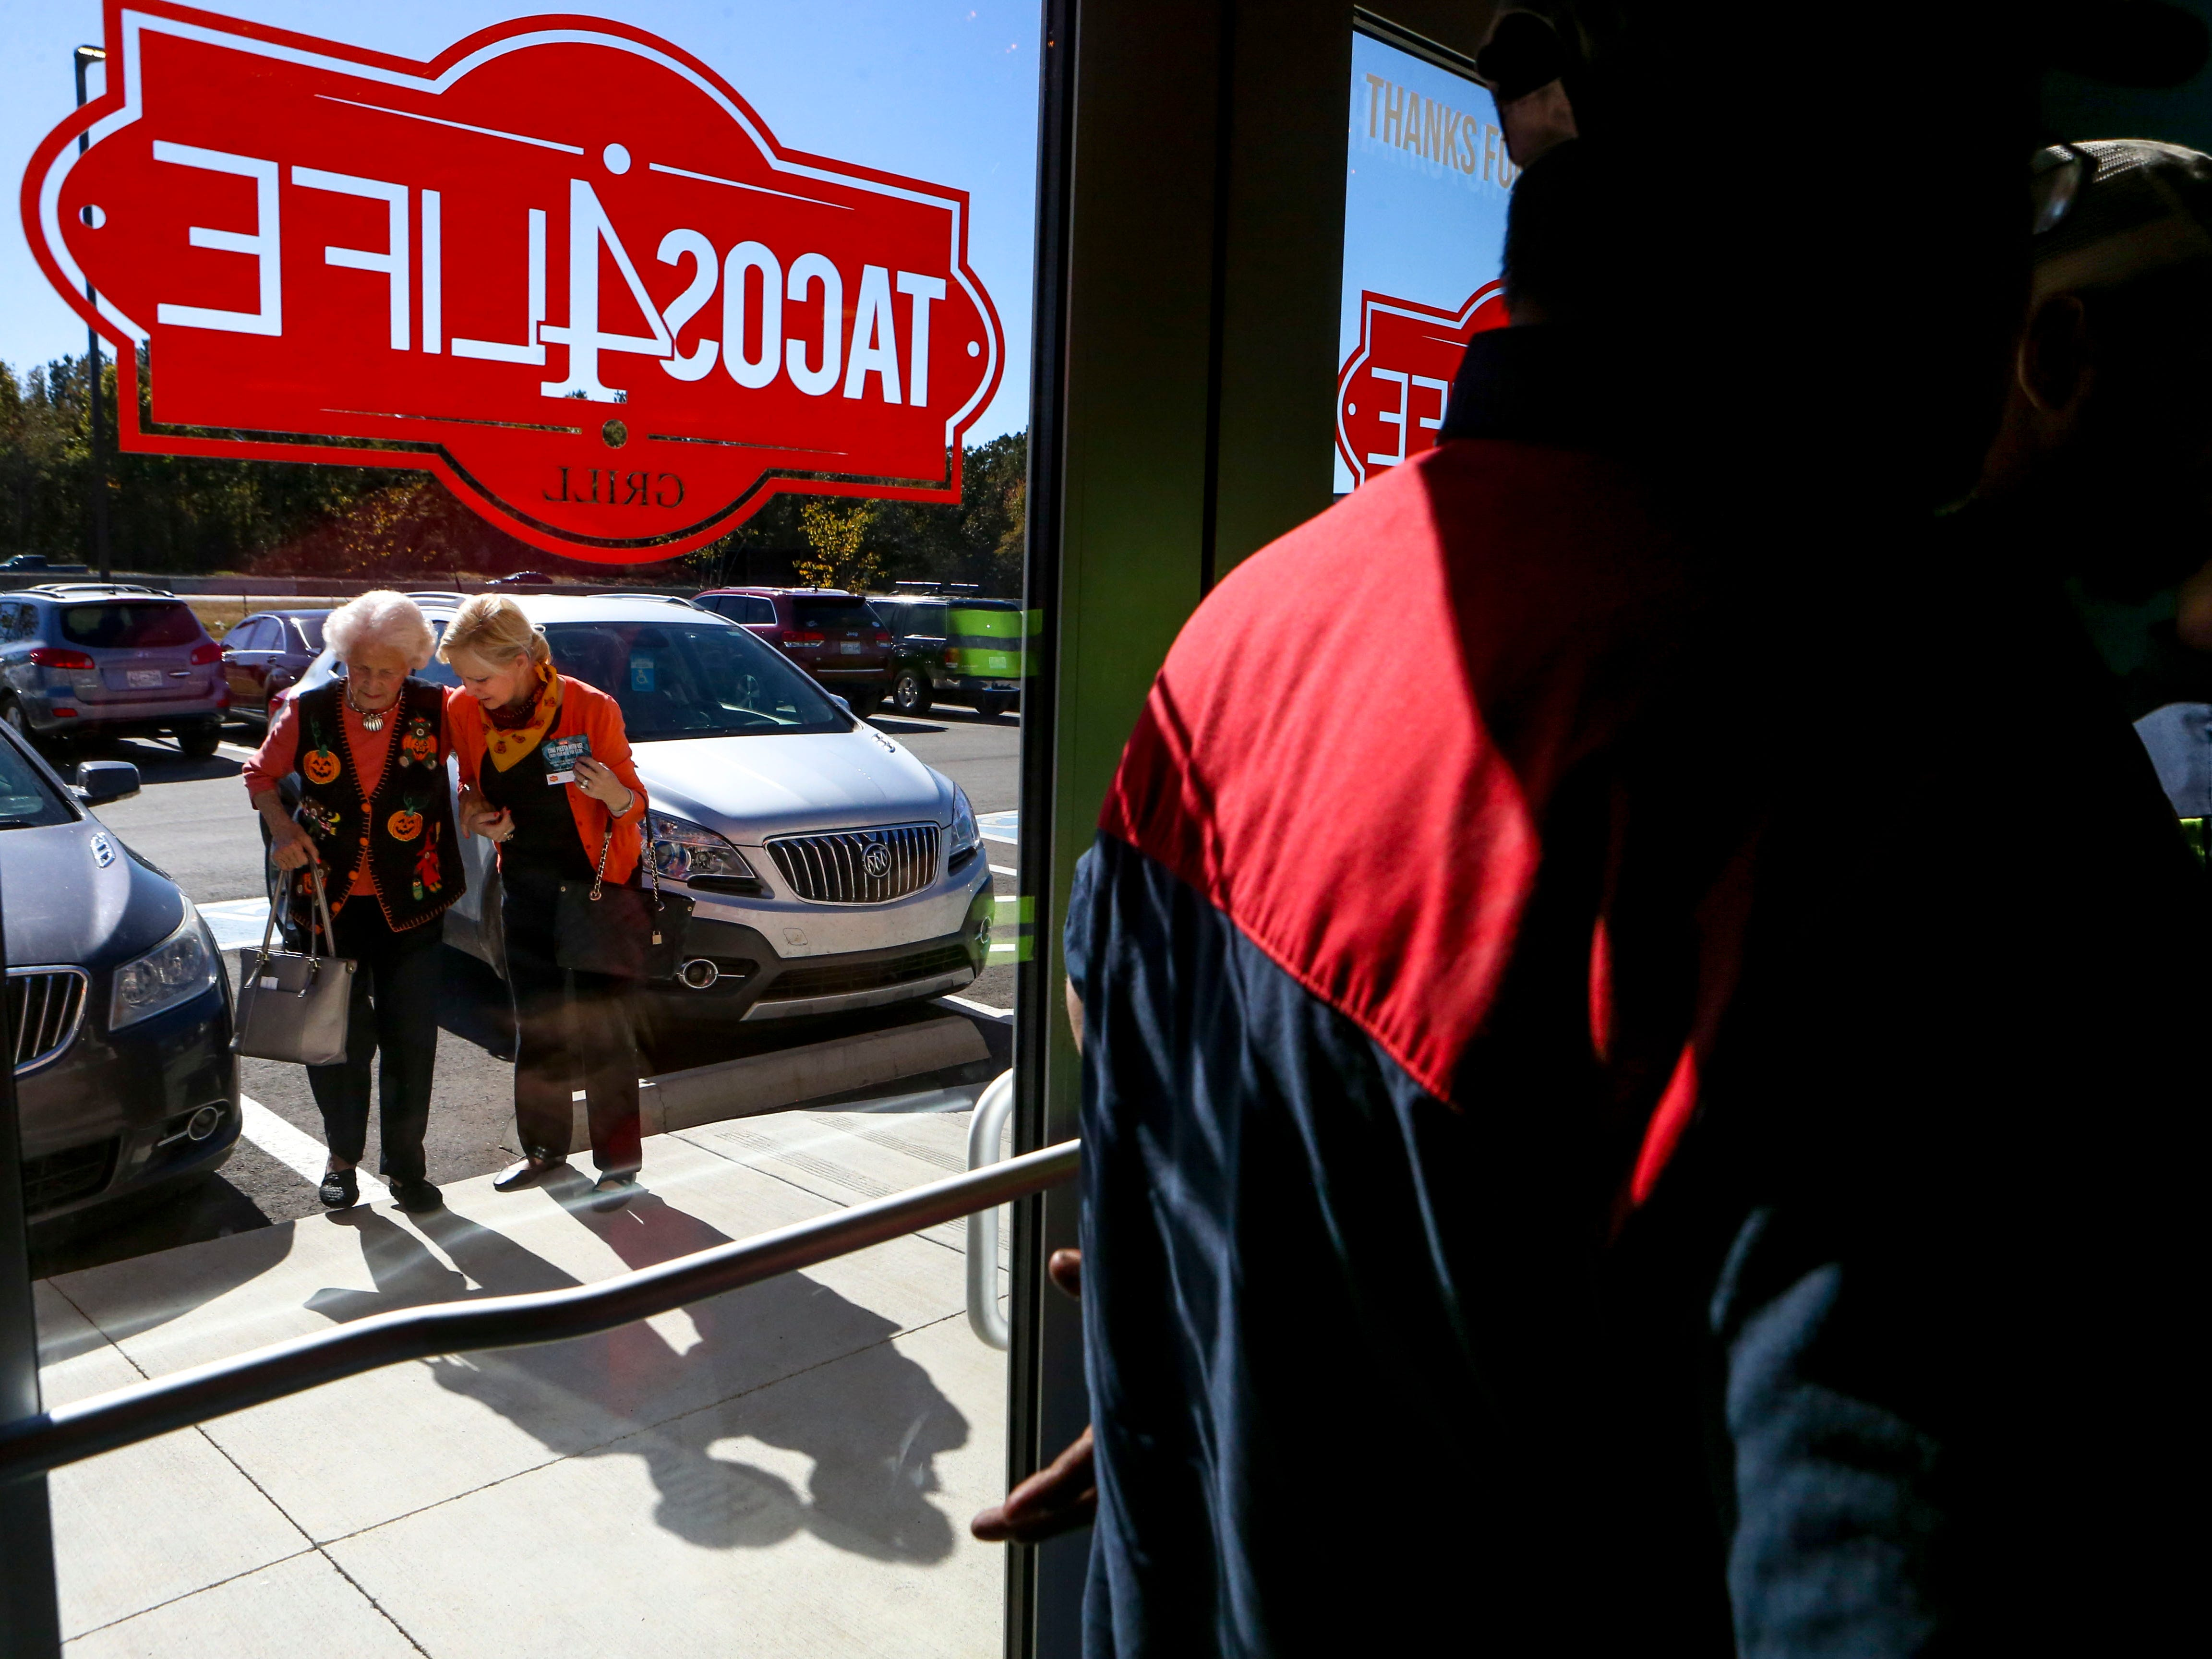 Patrons approach the entrance filled with people waiting in line during the soft opening at Tacos 4 Life, a new restaurant in Jackson, Tenn., on Monday, Oct. 29, 2018.